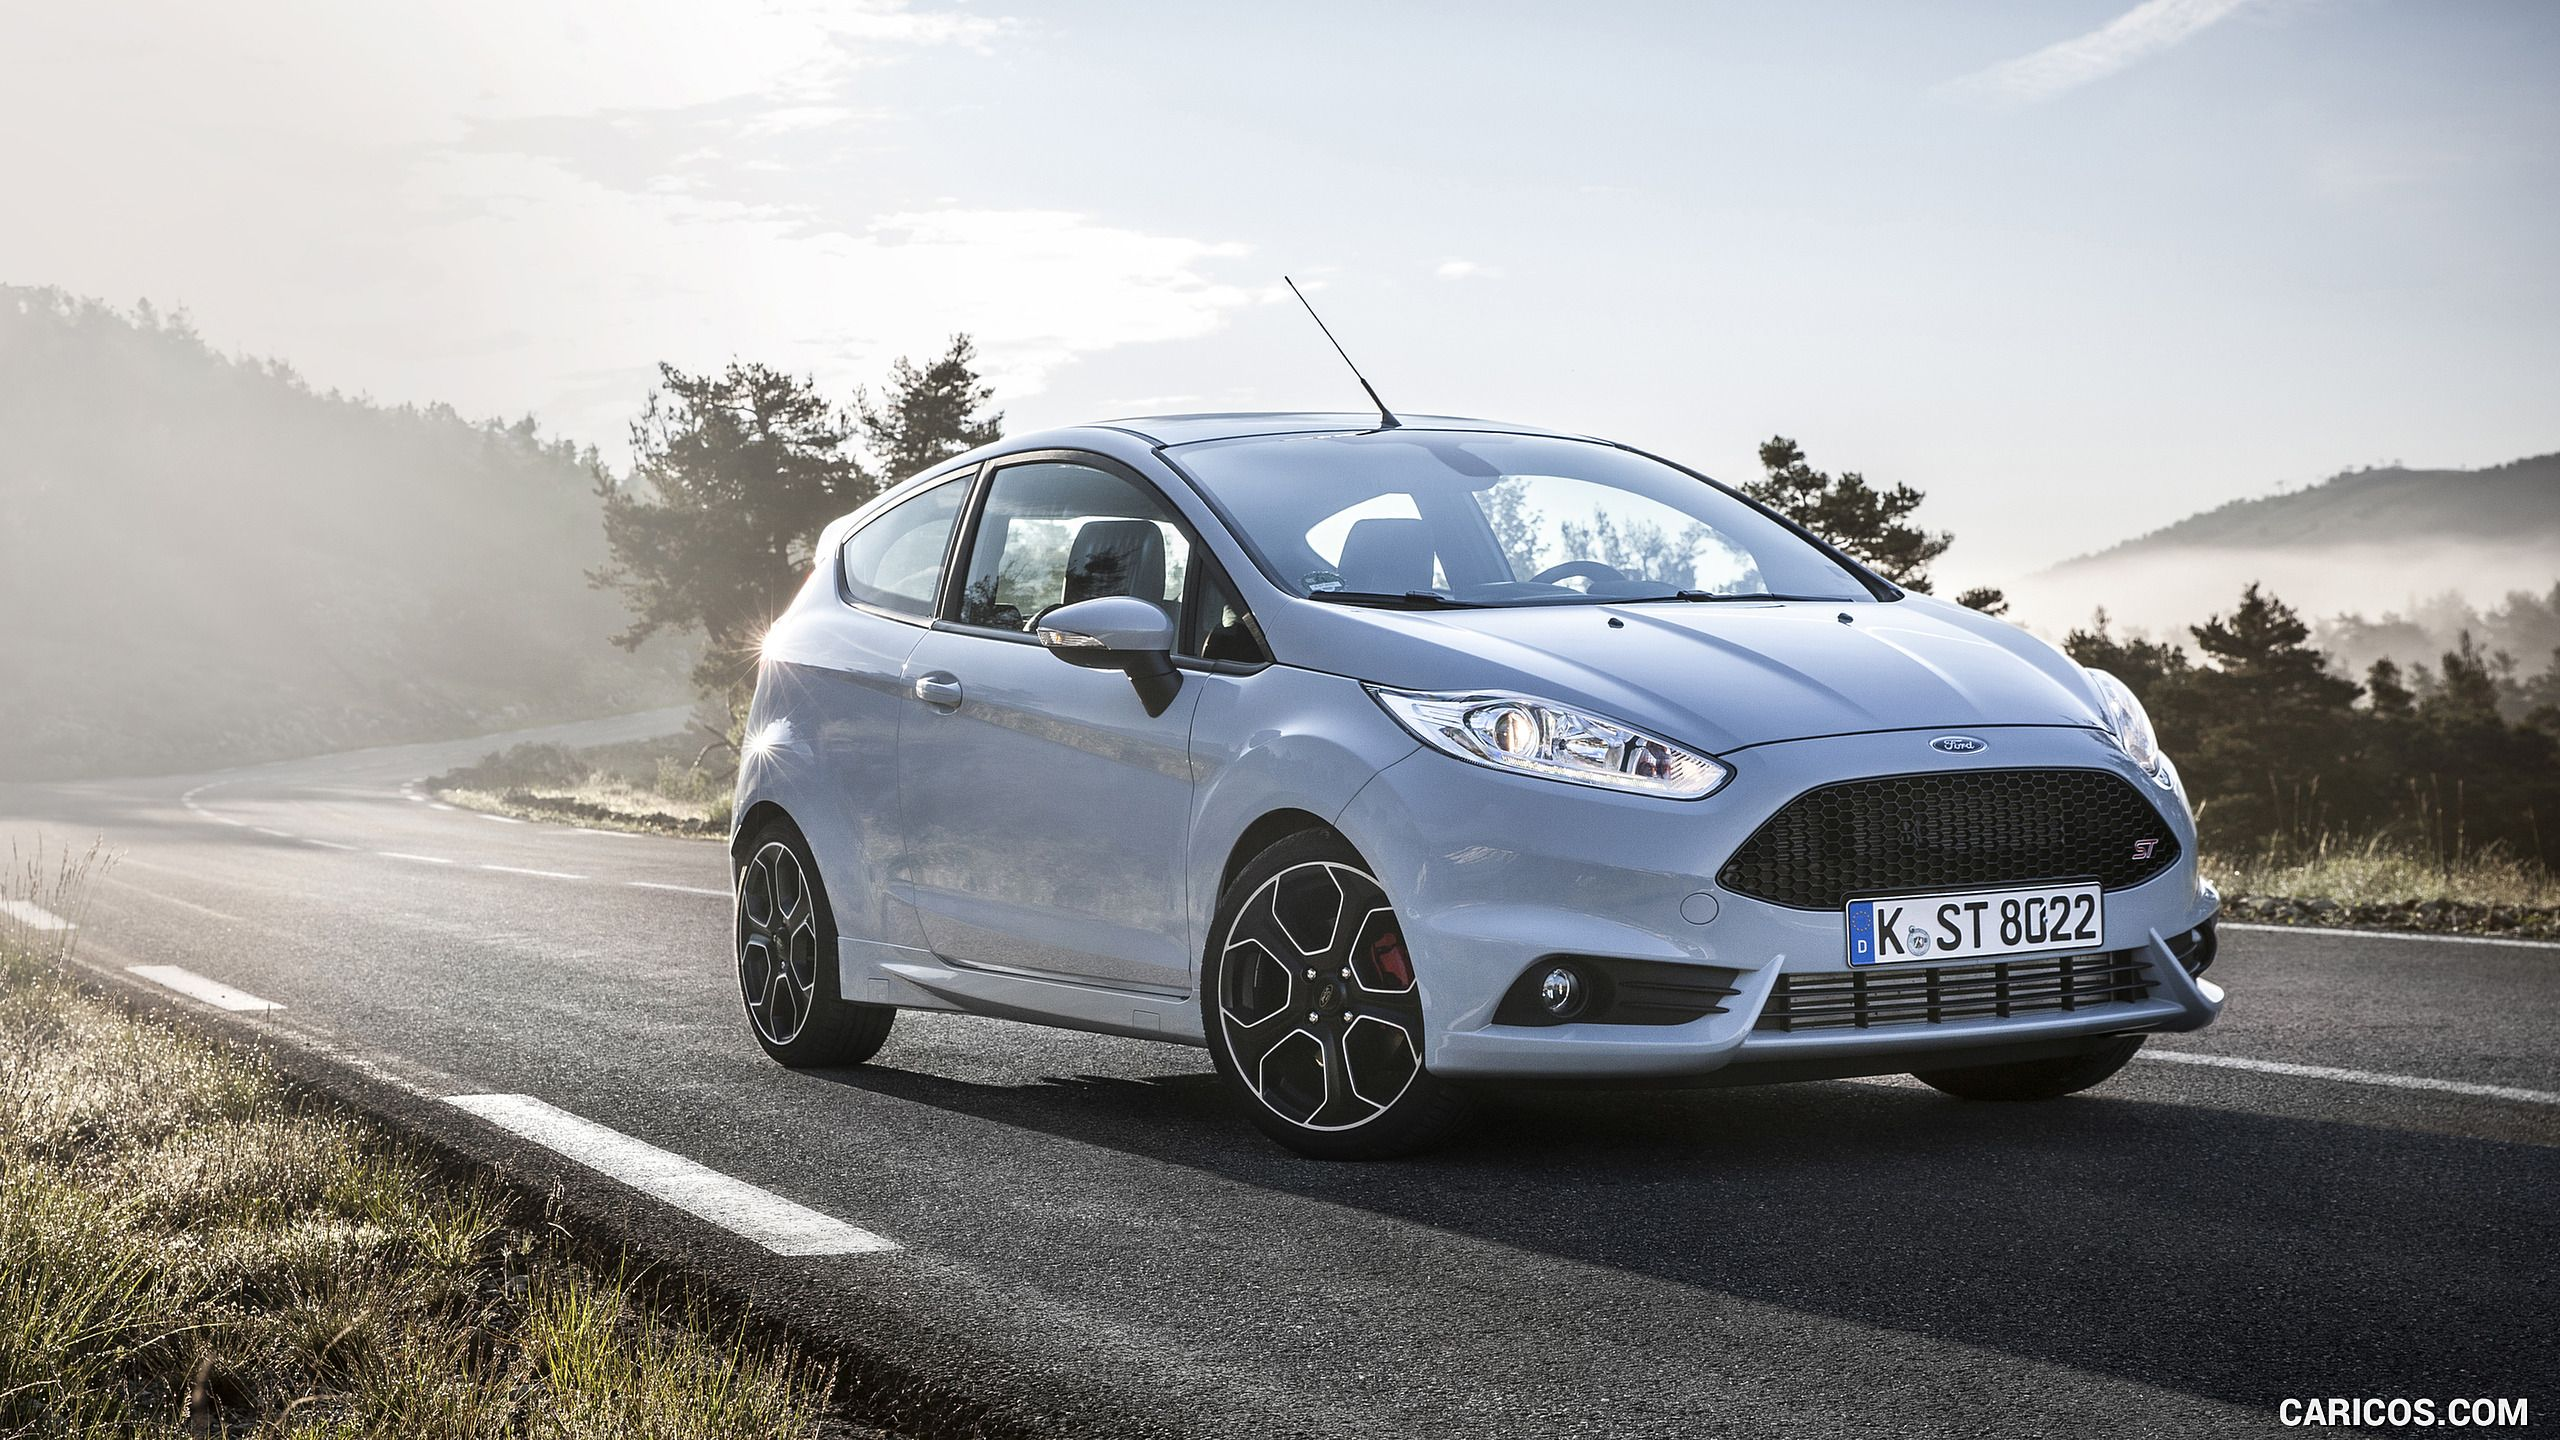 Ford Fiesta Wallpapers Wallpapers All Superior Ford Fiesta Wallpapers Backgrounds Wallpapersplanet Net